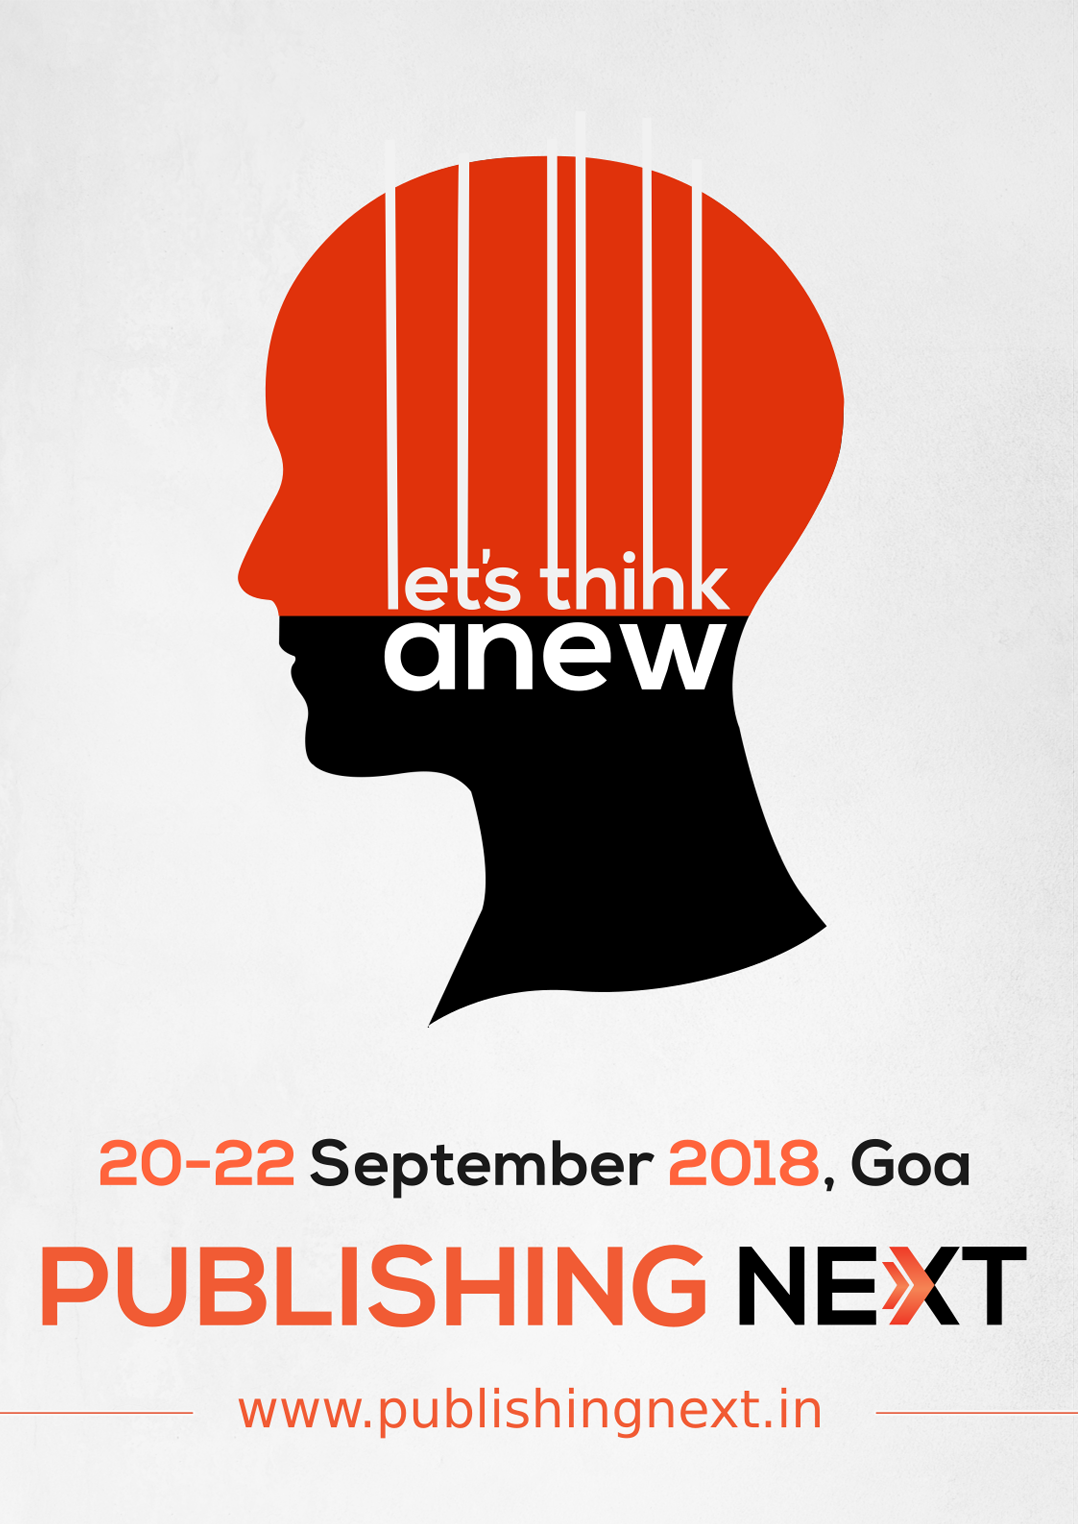 publishing next conference